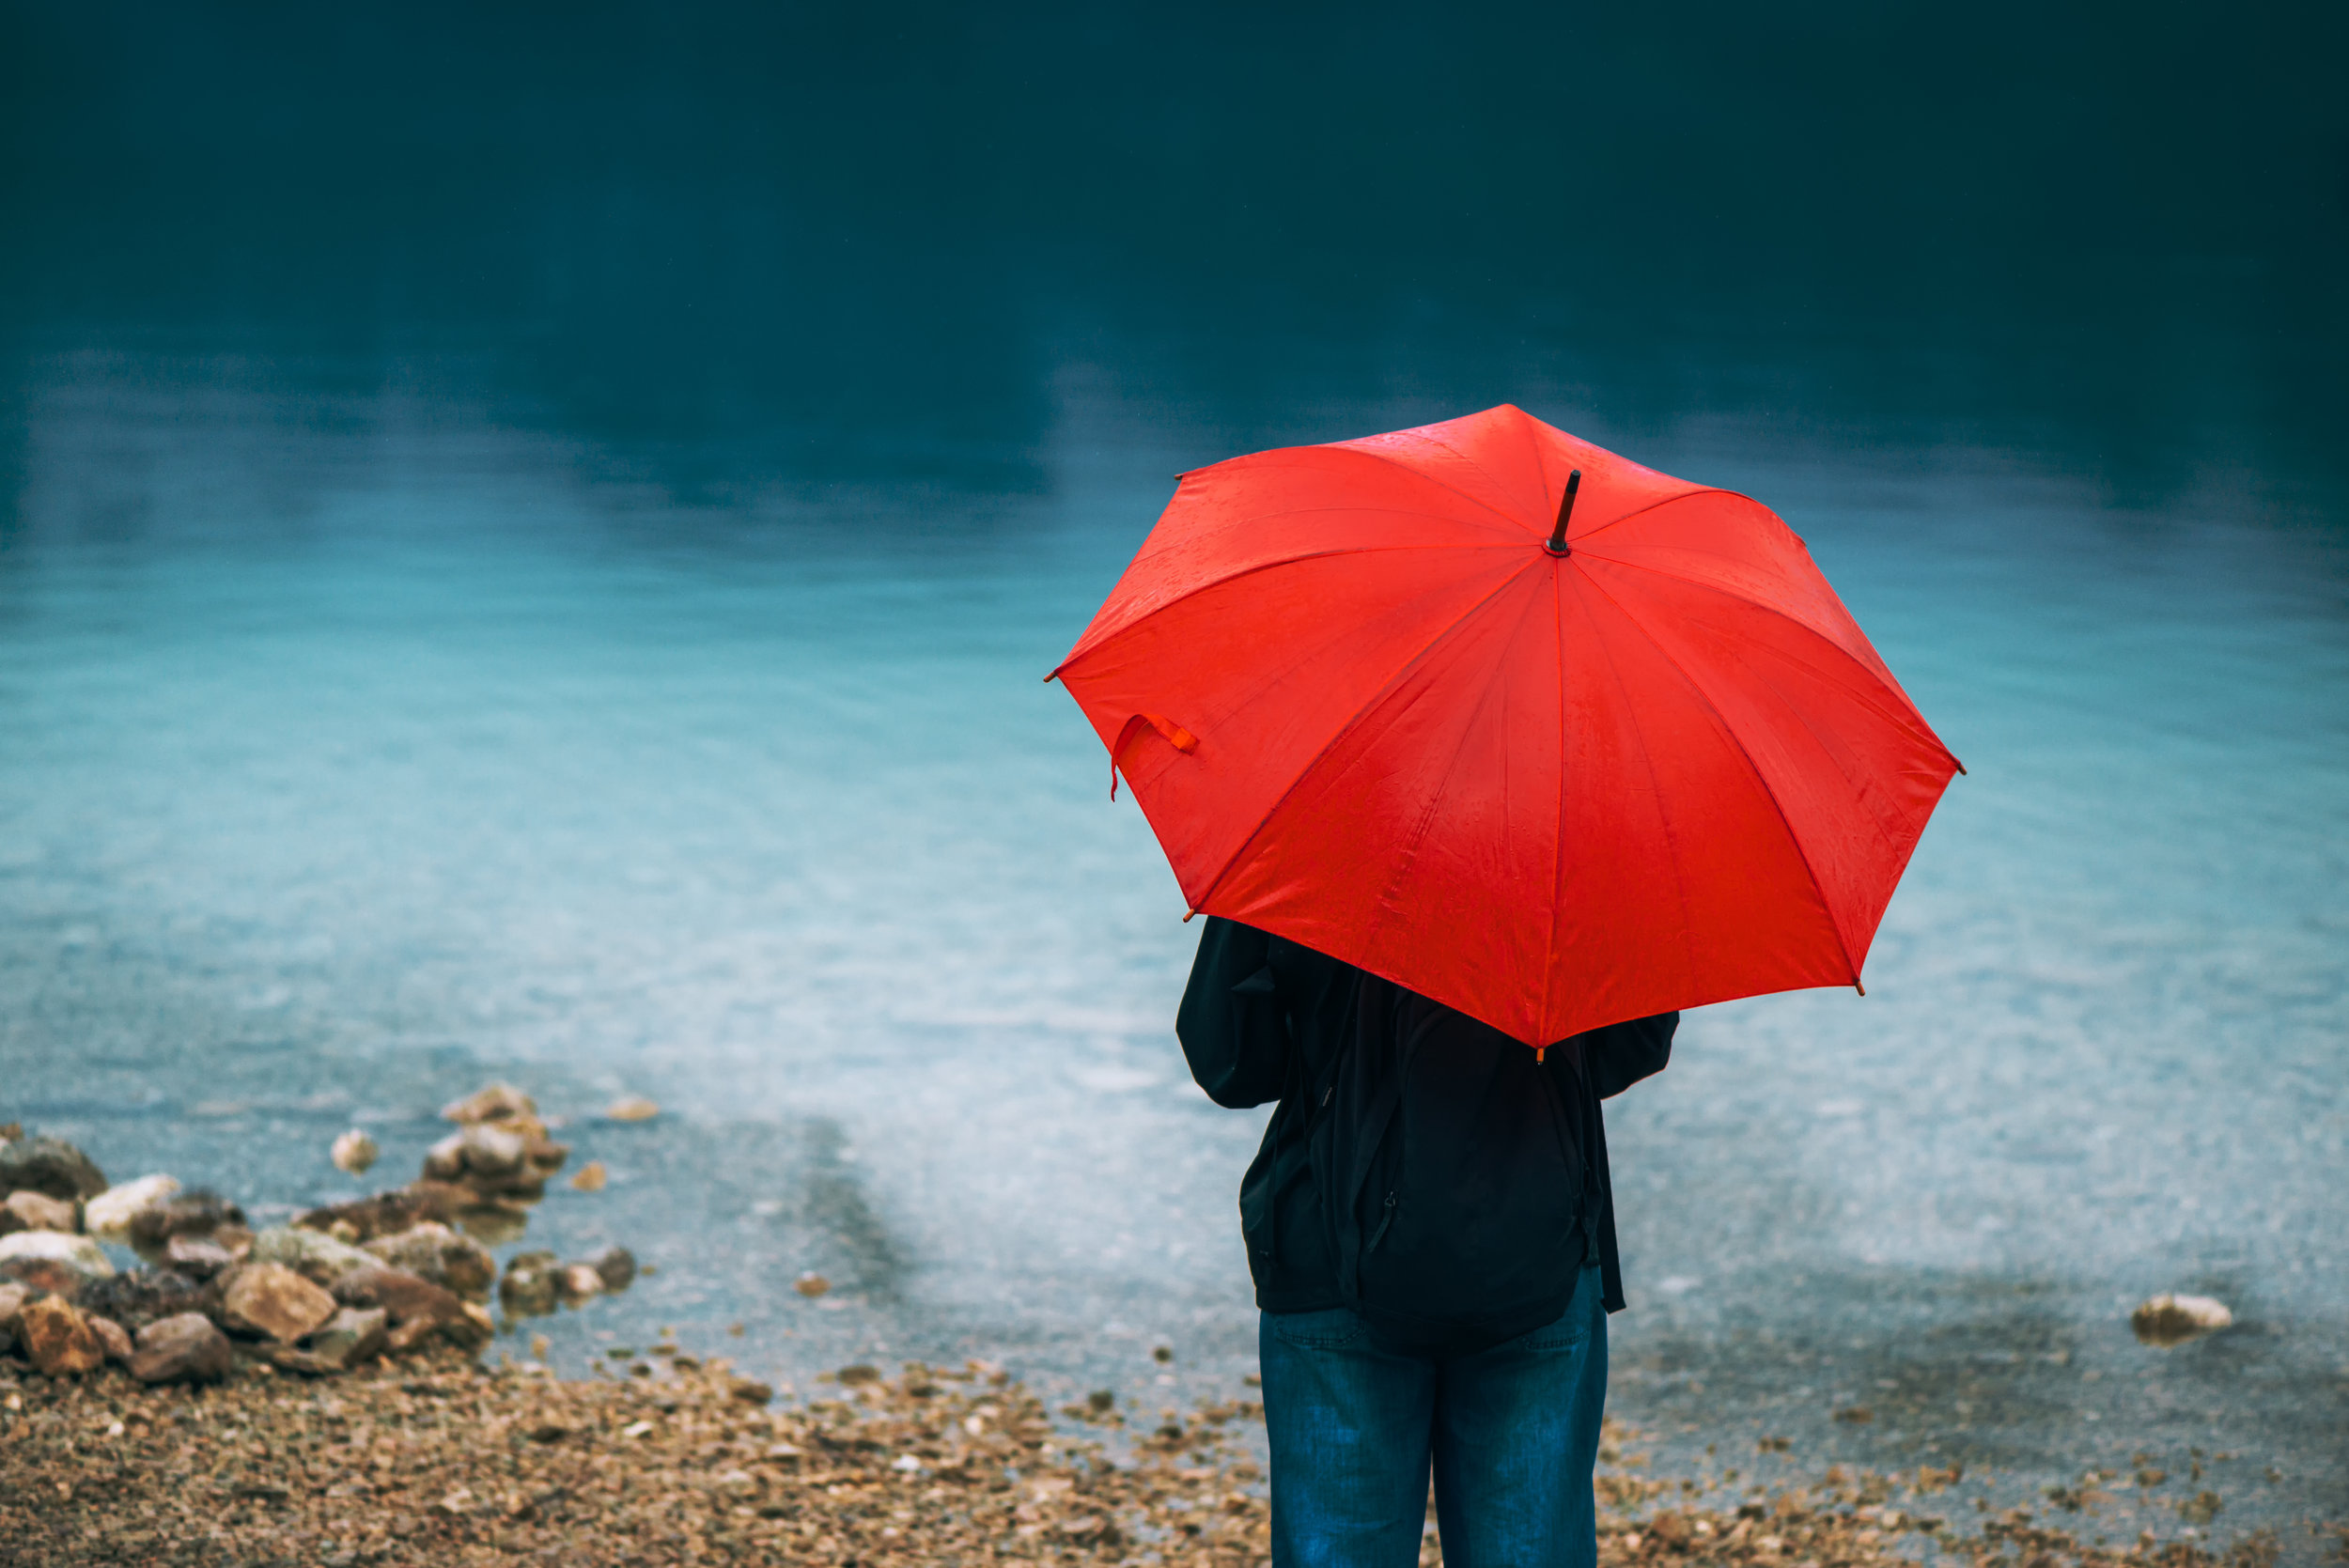 woman-with-red-umbrella-contemplates-on-rain-PJFZ6TW.jpg